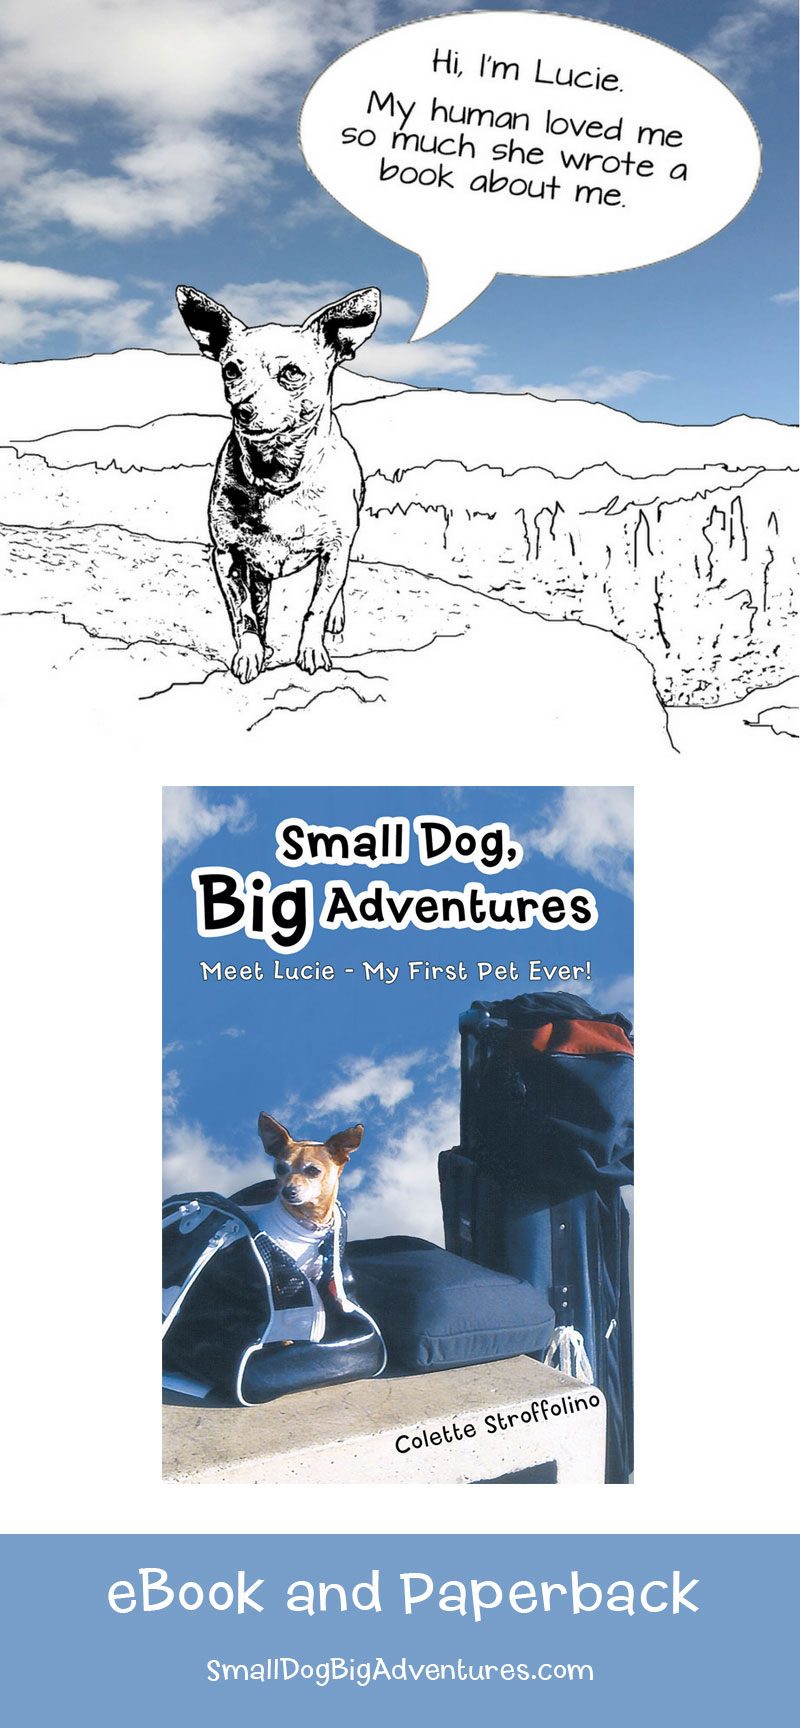 Small Dog Big Adventures - Book about a Chihuahua